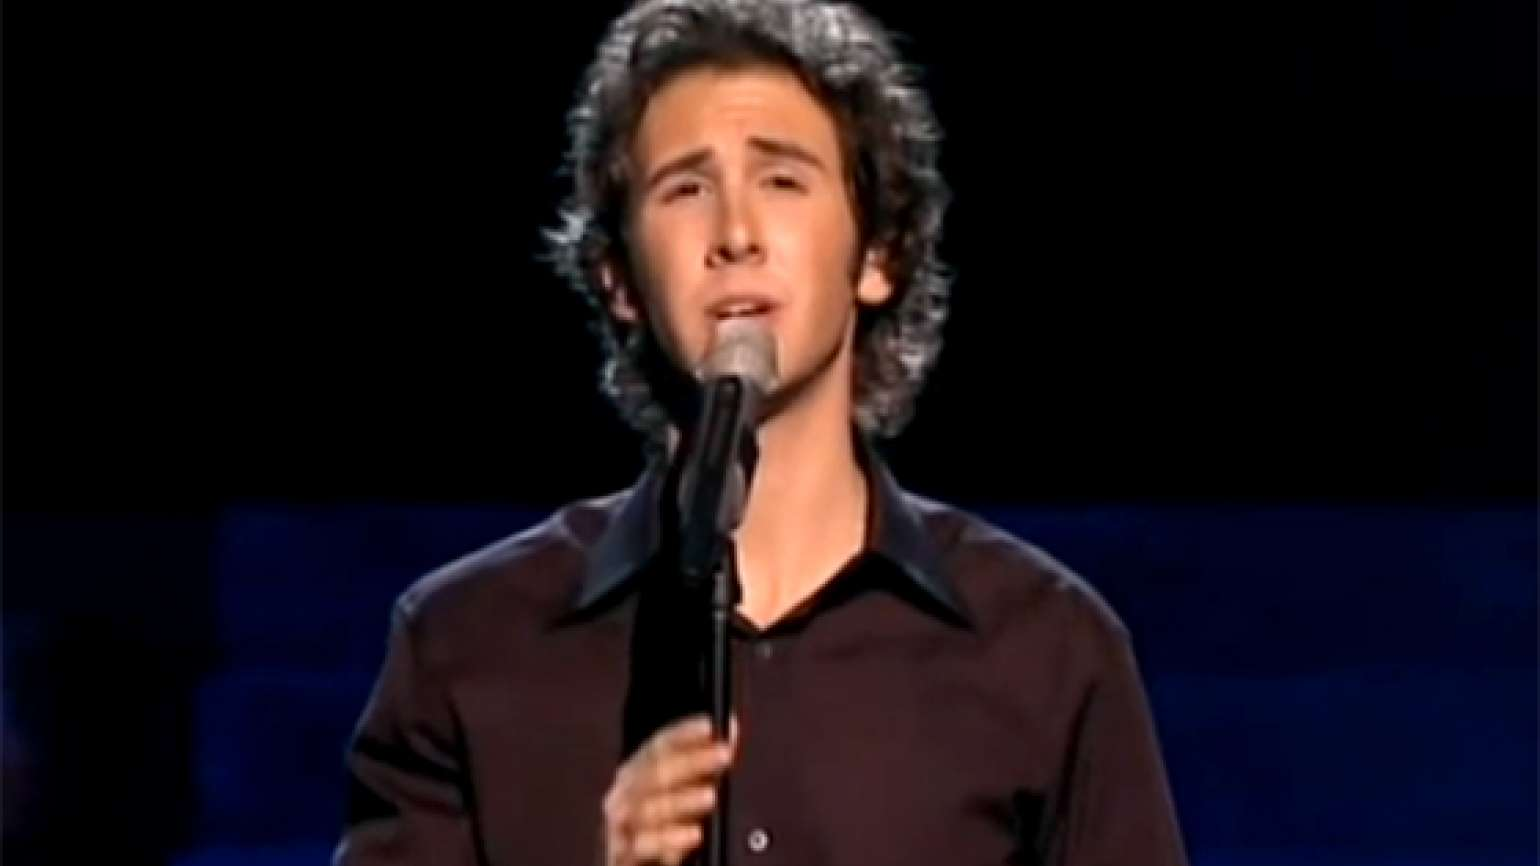 Josh Groban performs for a live audience.